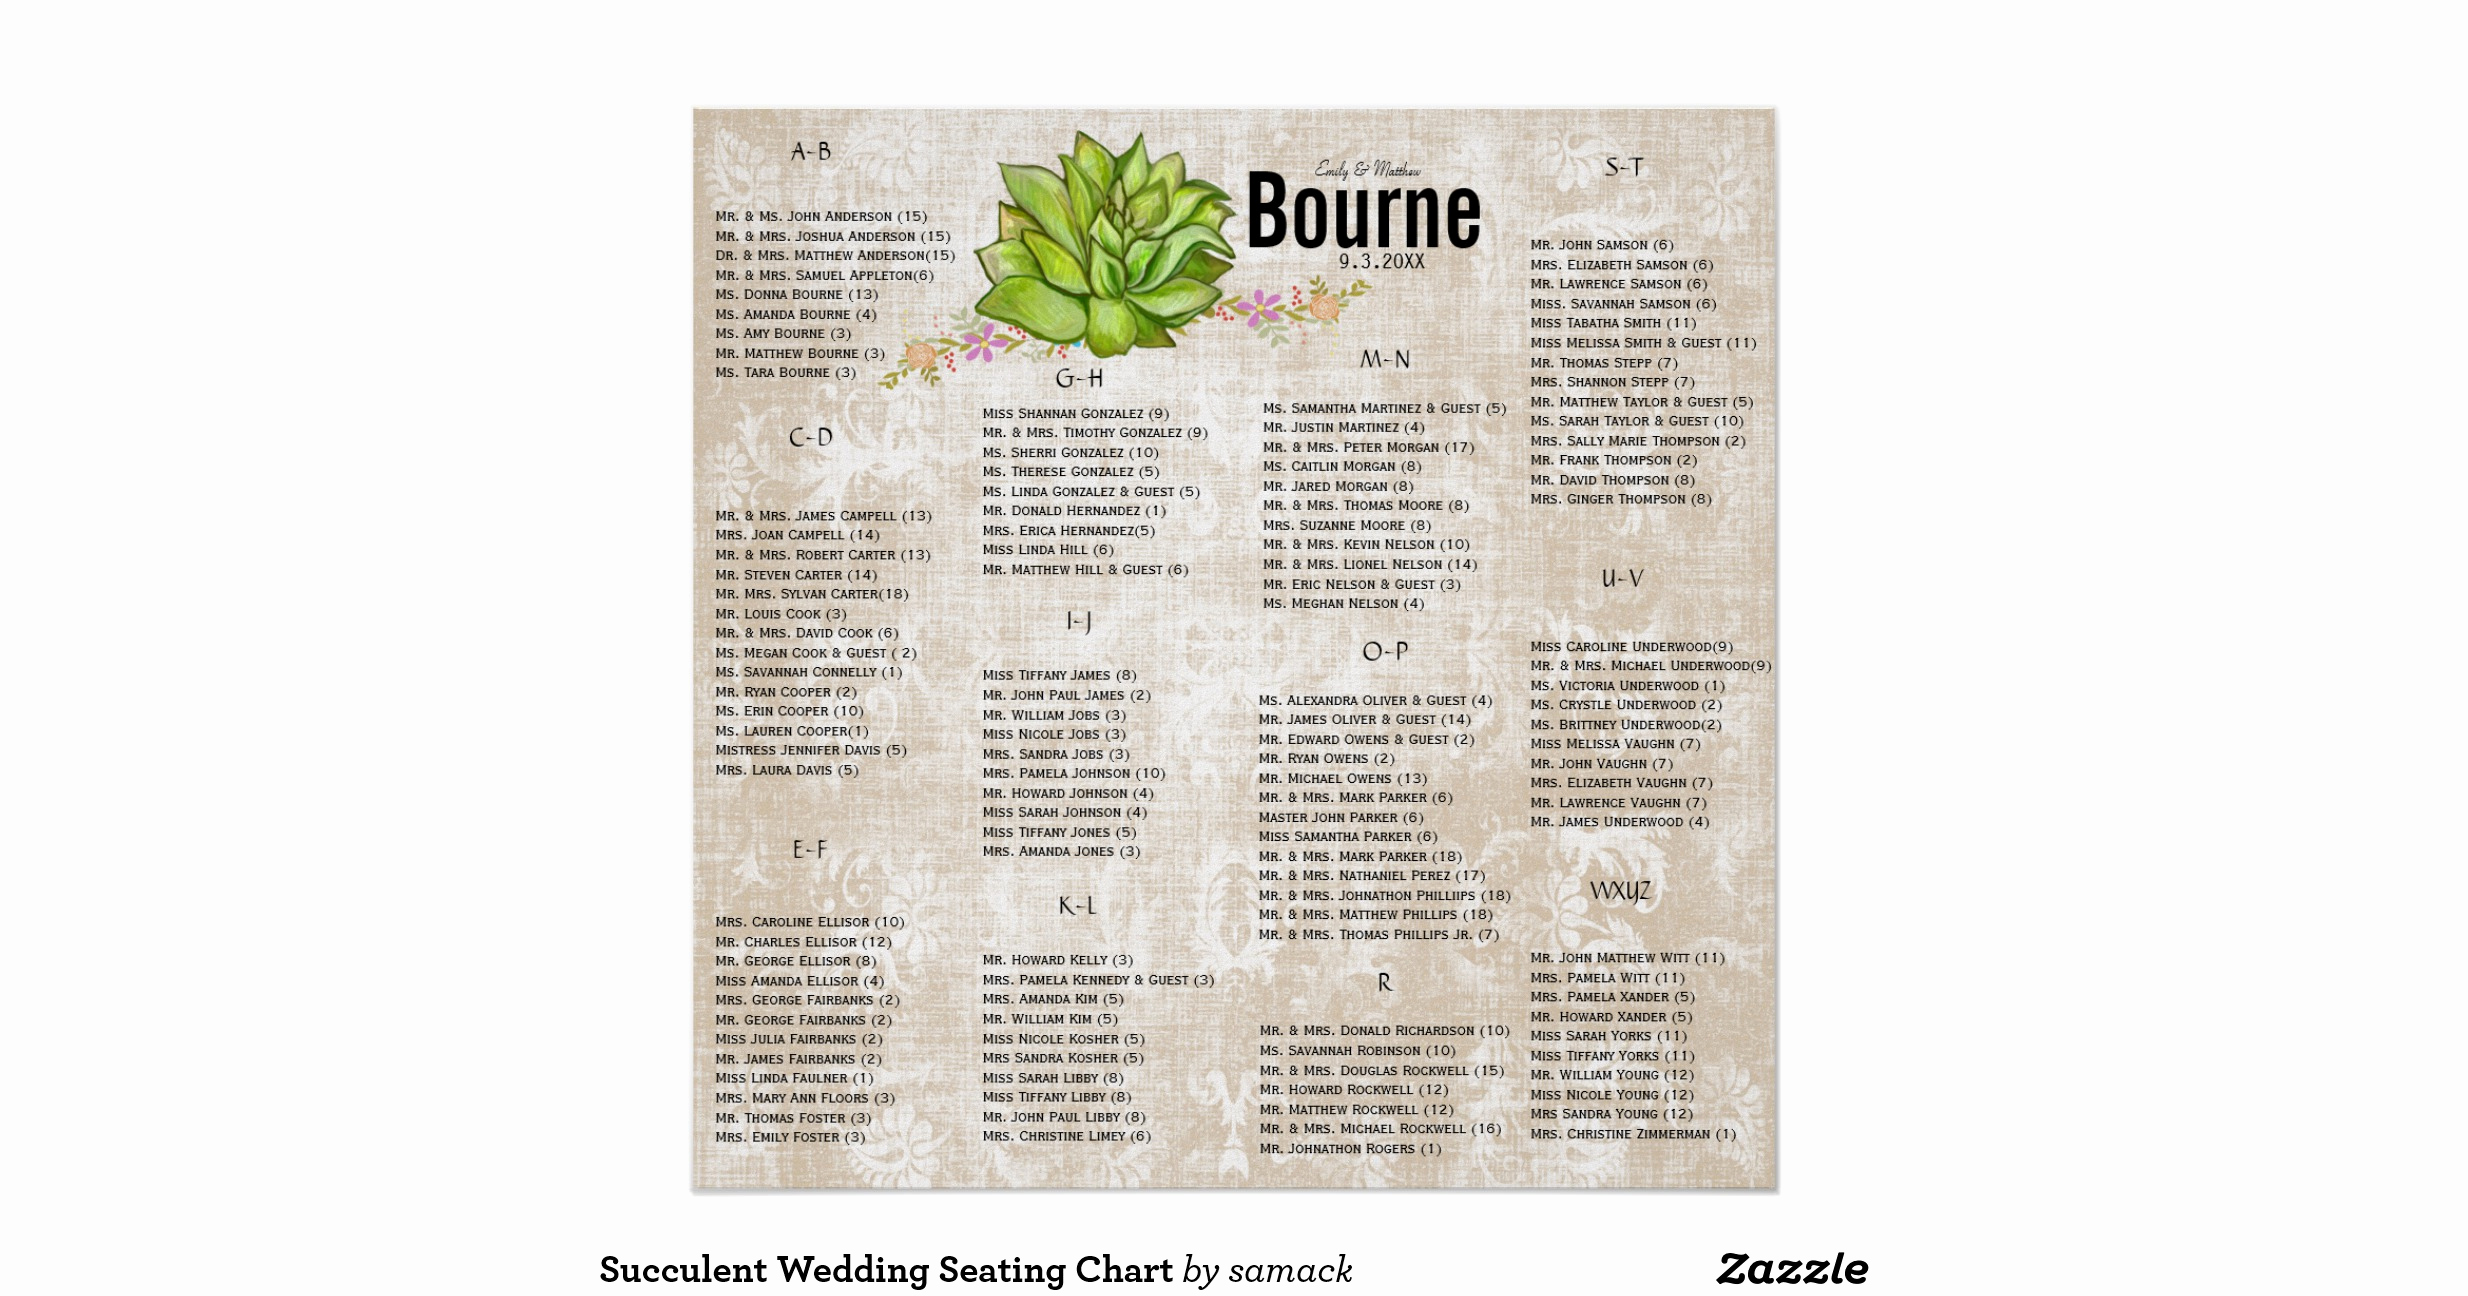 Wedding Seating Chart Poster Unique Succulent Wedding Seating Chart Poster